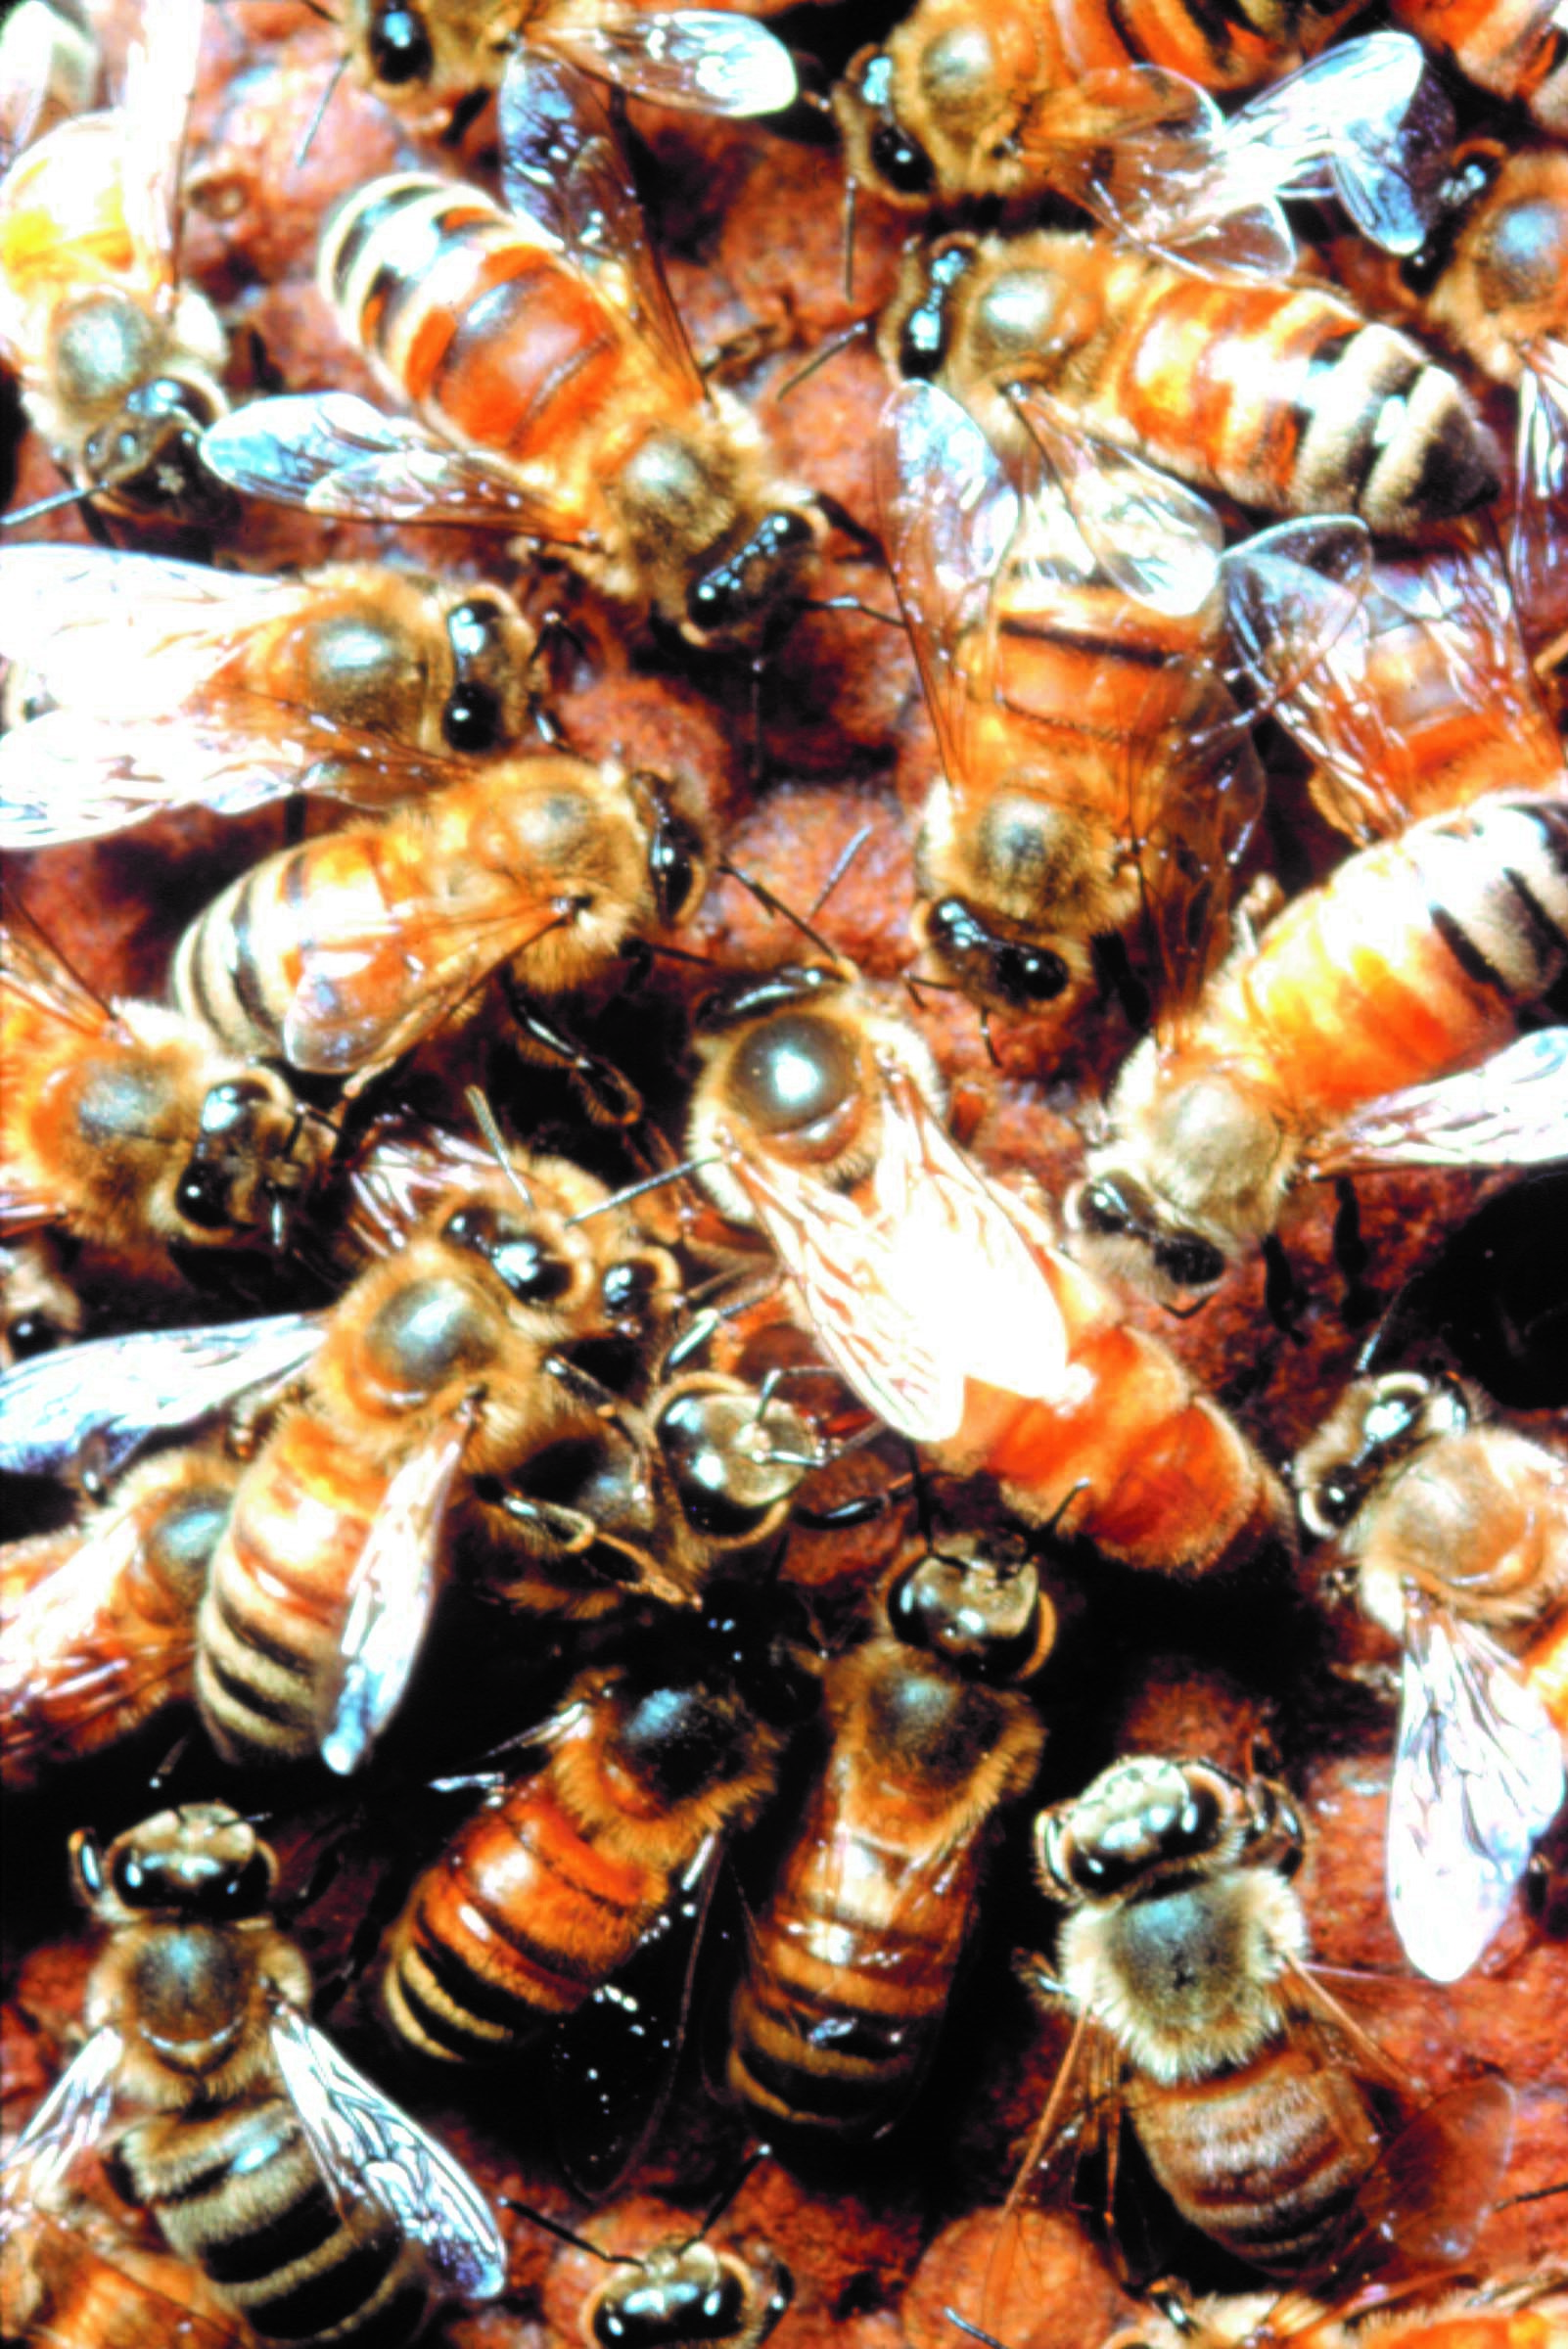 CATCH THE BUZZ – Researchers identify how queen bees repress workers' fertility